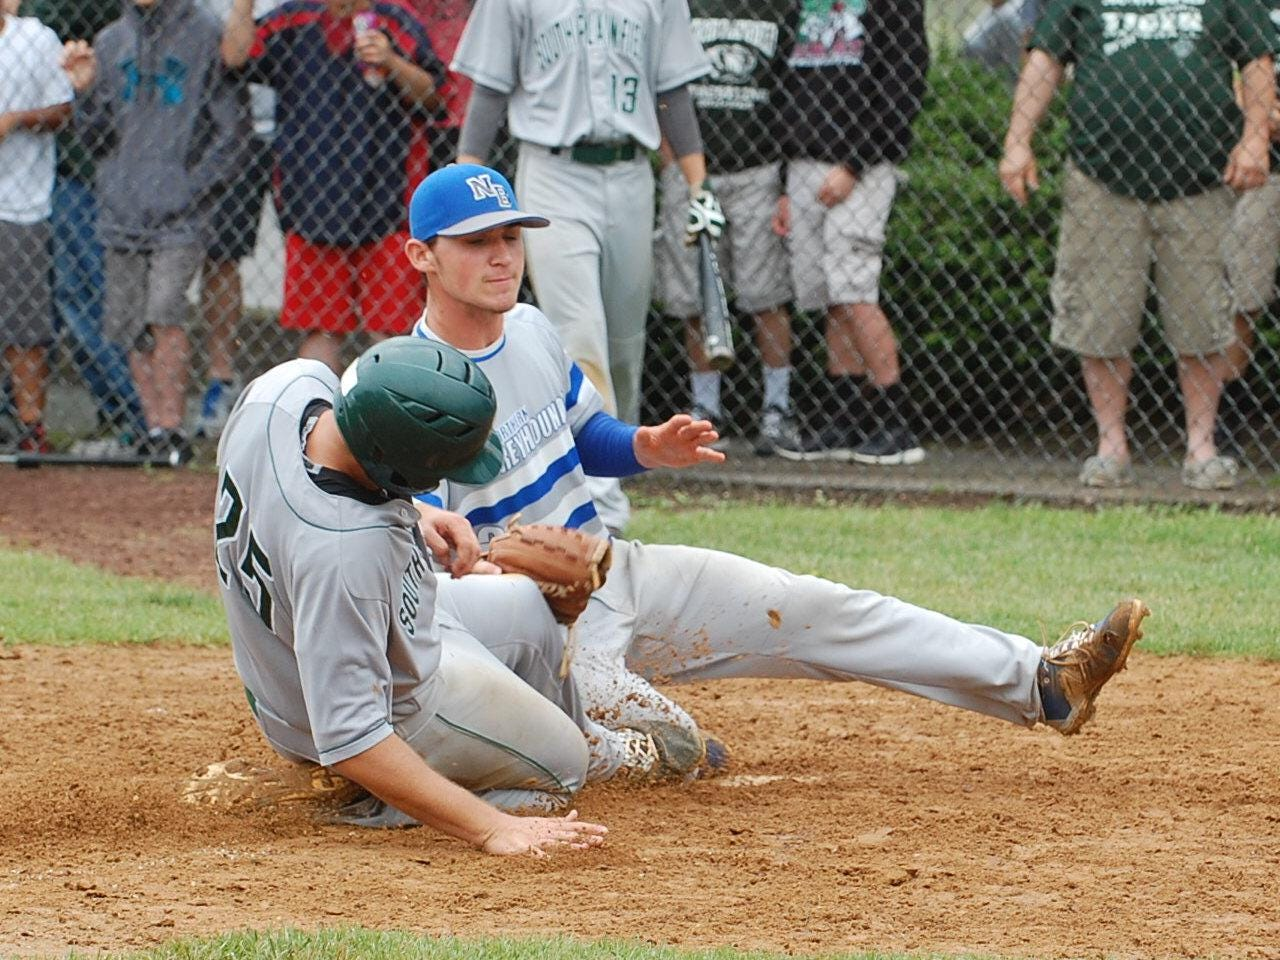 Nick Polizzano of South Plainfield is safe at the plate as Northern Burlington pitcher Ryan Shinn applies a late tag in the fifth inning Saturday.